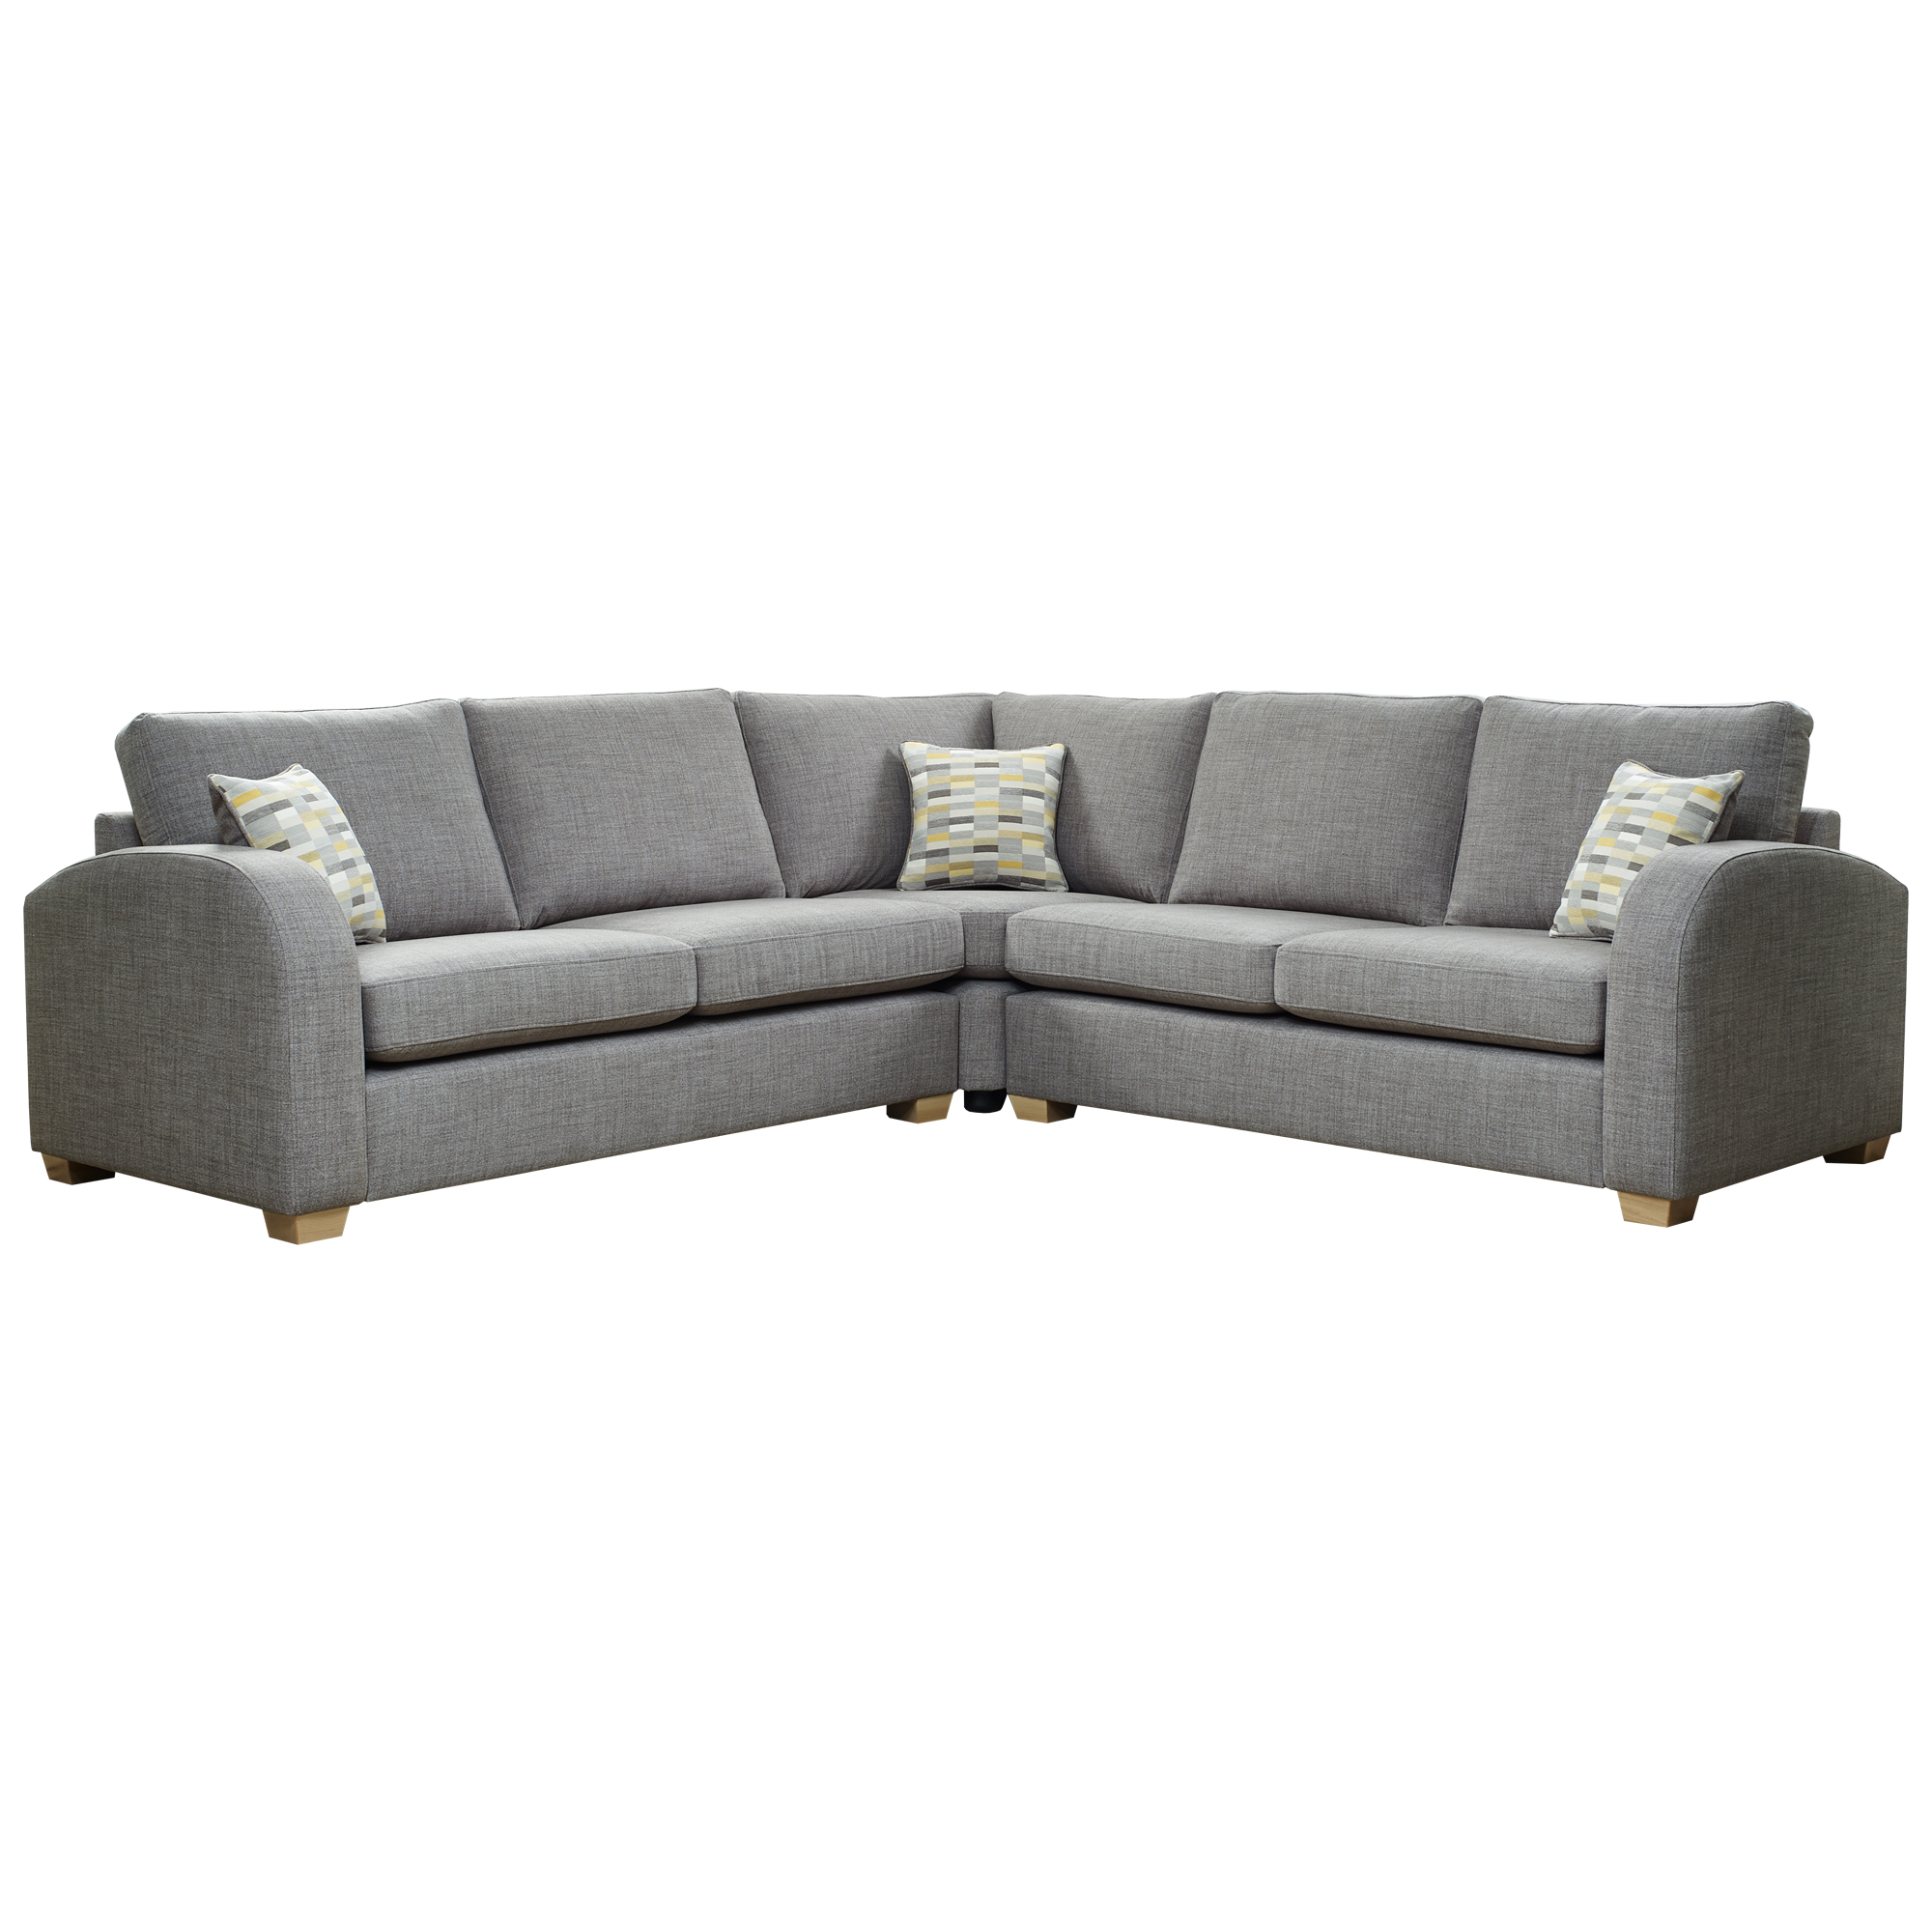 modern sofa bed new york single seater the yellow by paulack